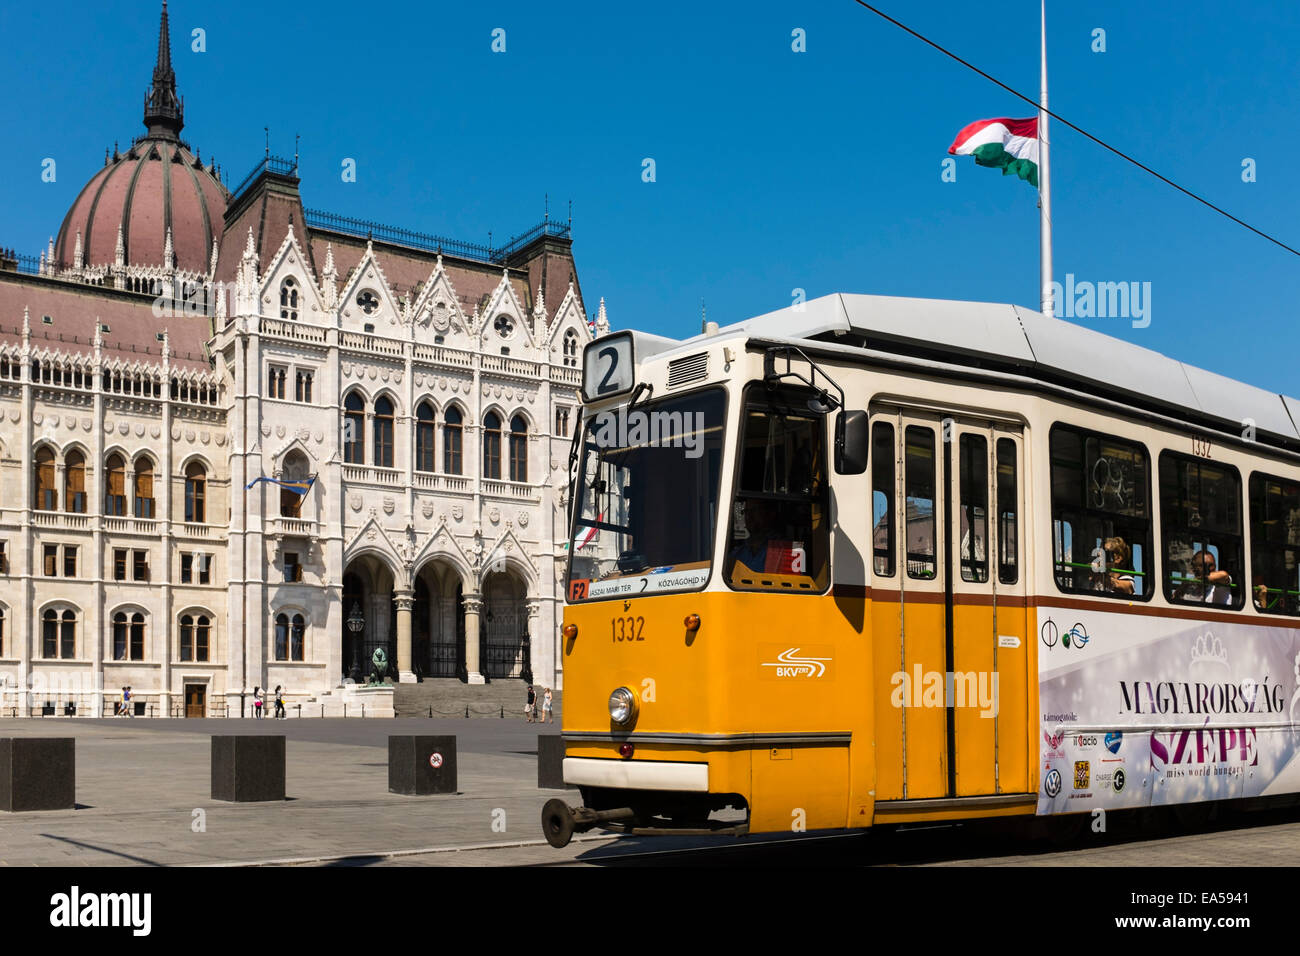 No. 2 yellow Tram in Parliament Square Budapest, Hungary. - Stock Image